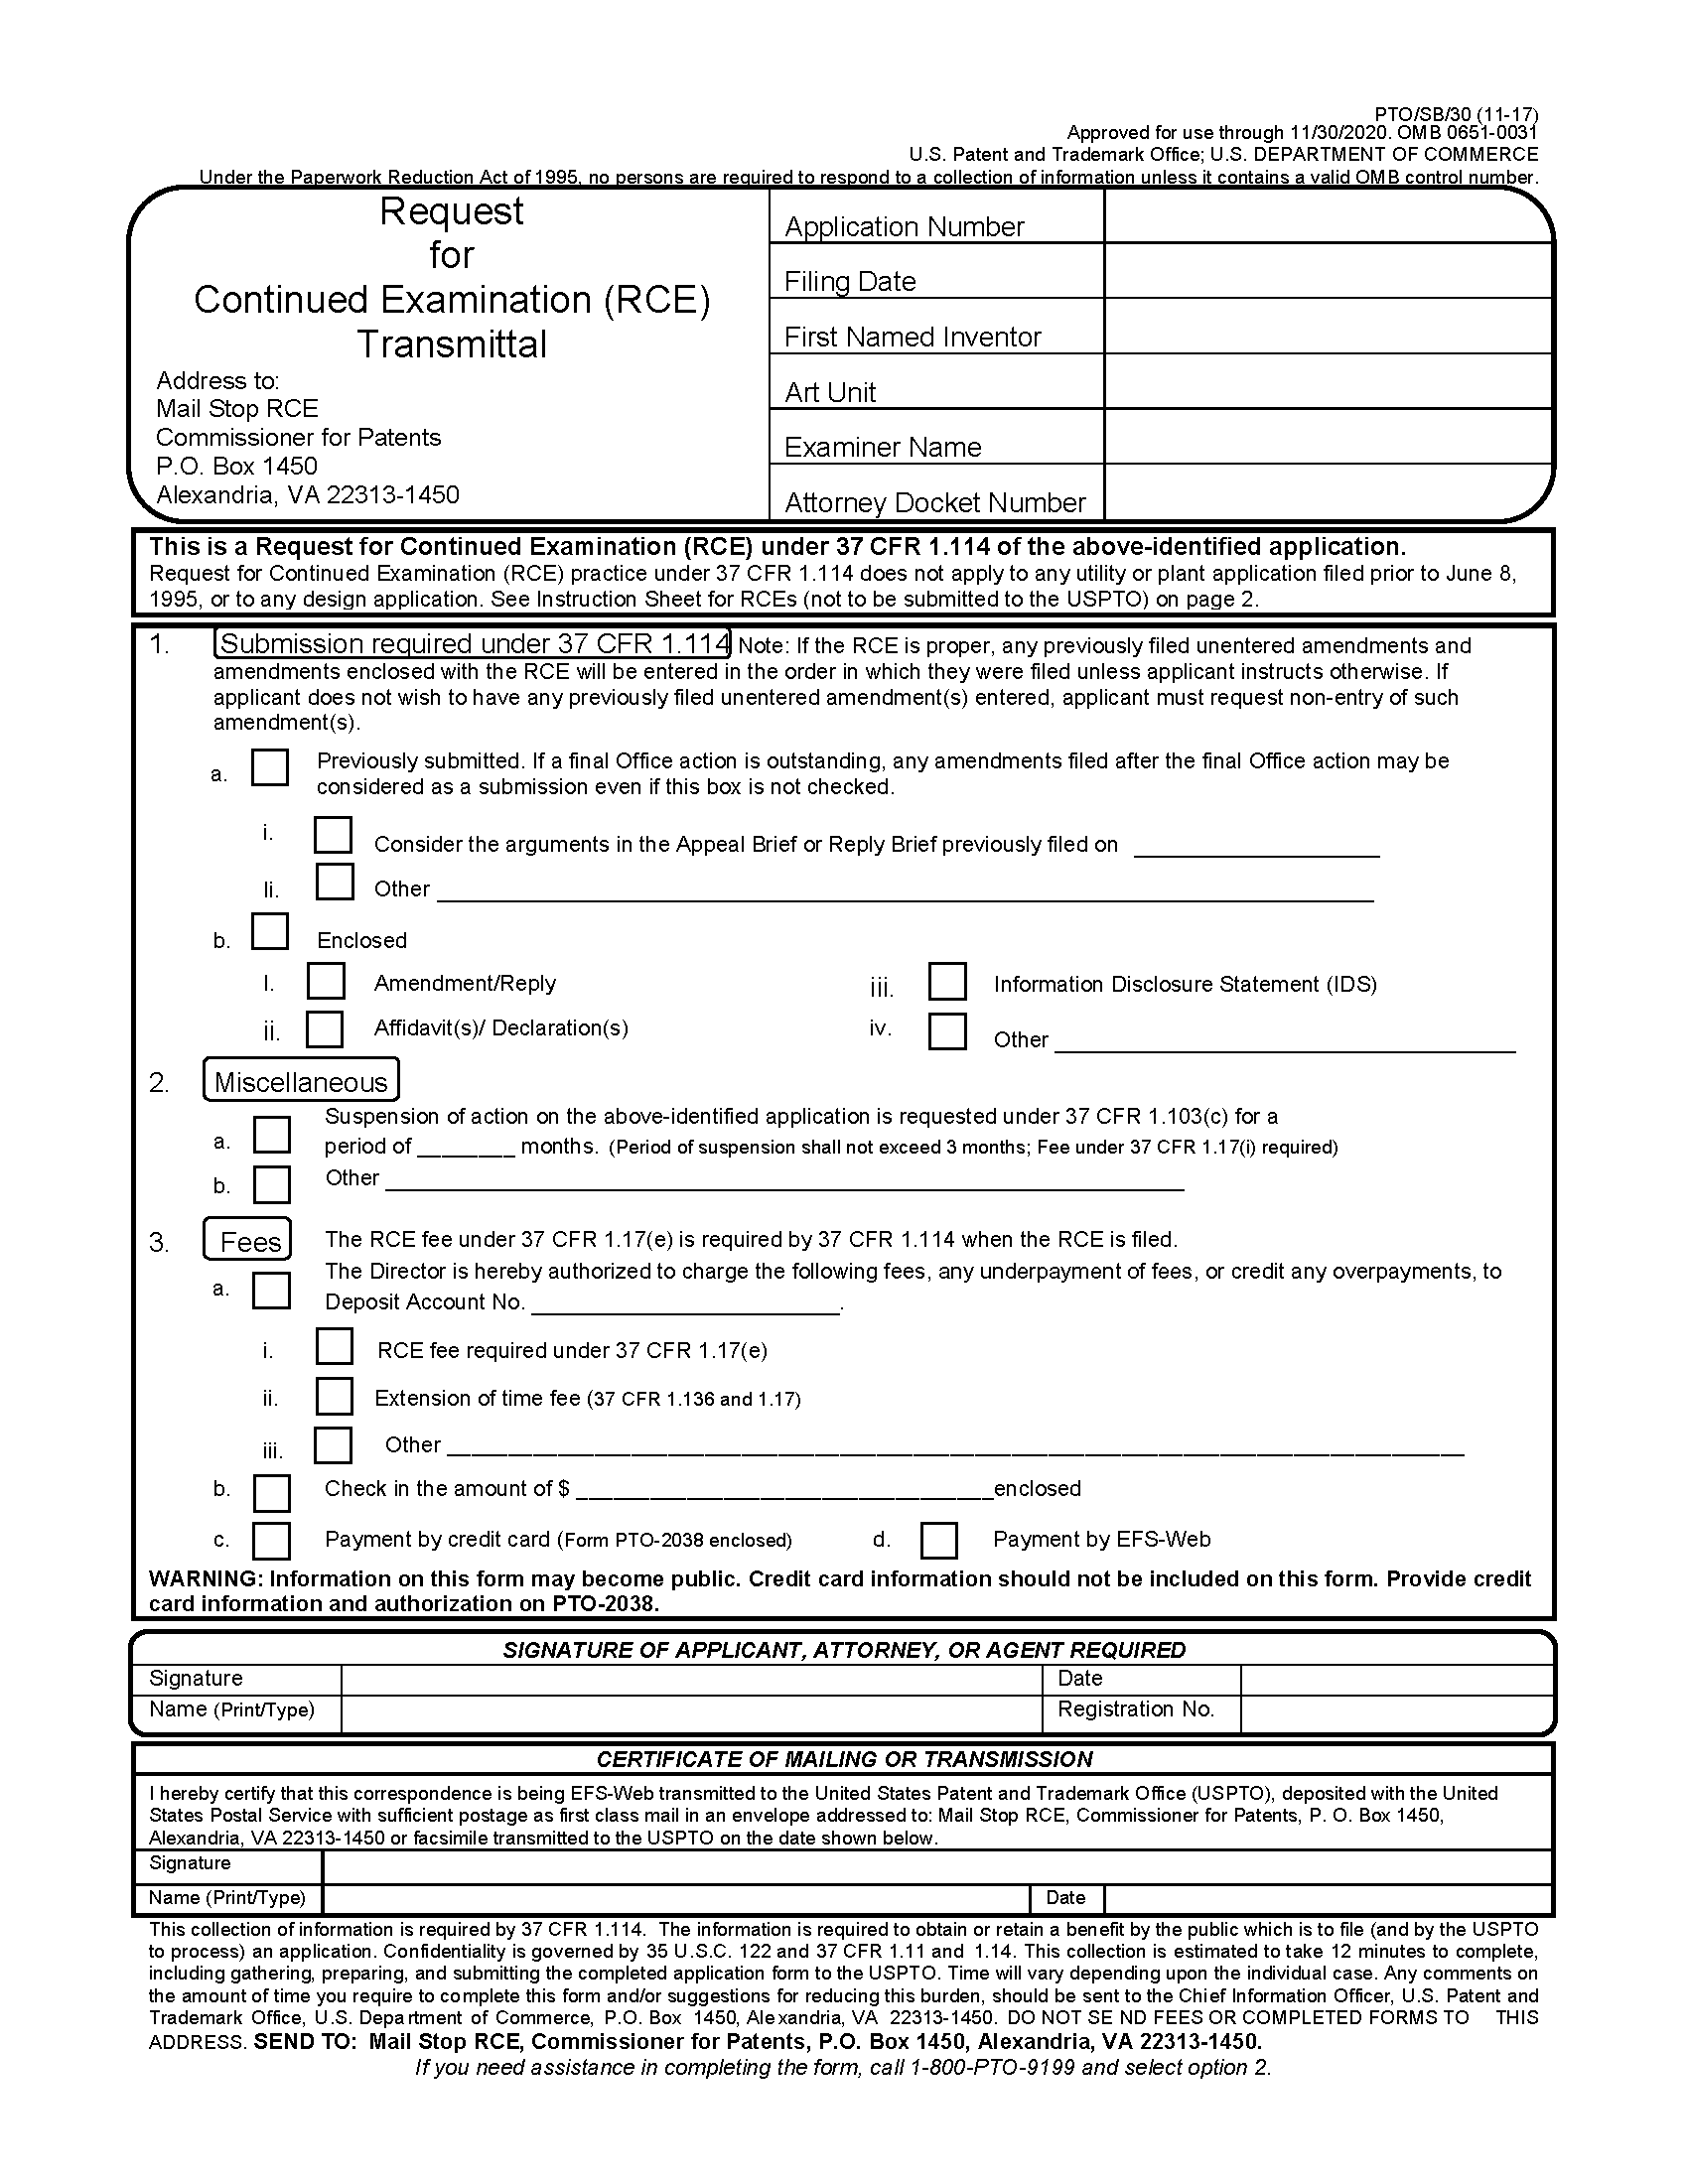 MPEP 706.07(h): Request for Continued Examination (RCE) Practice ...